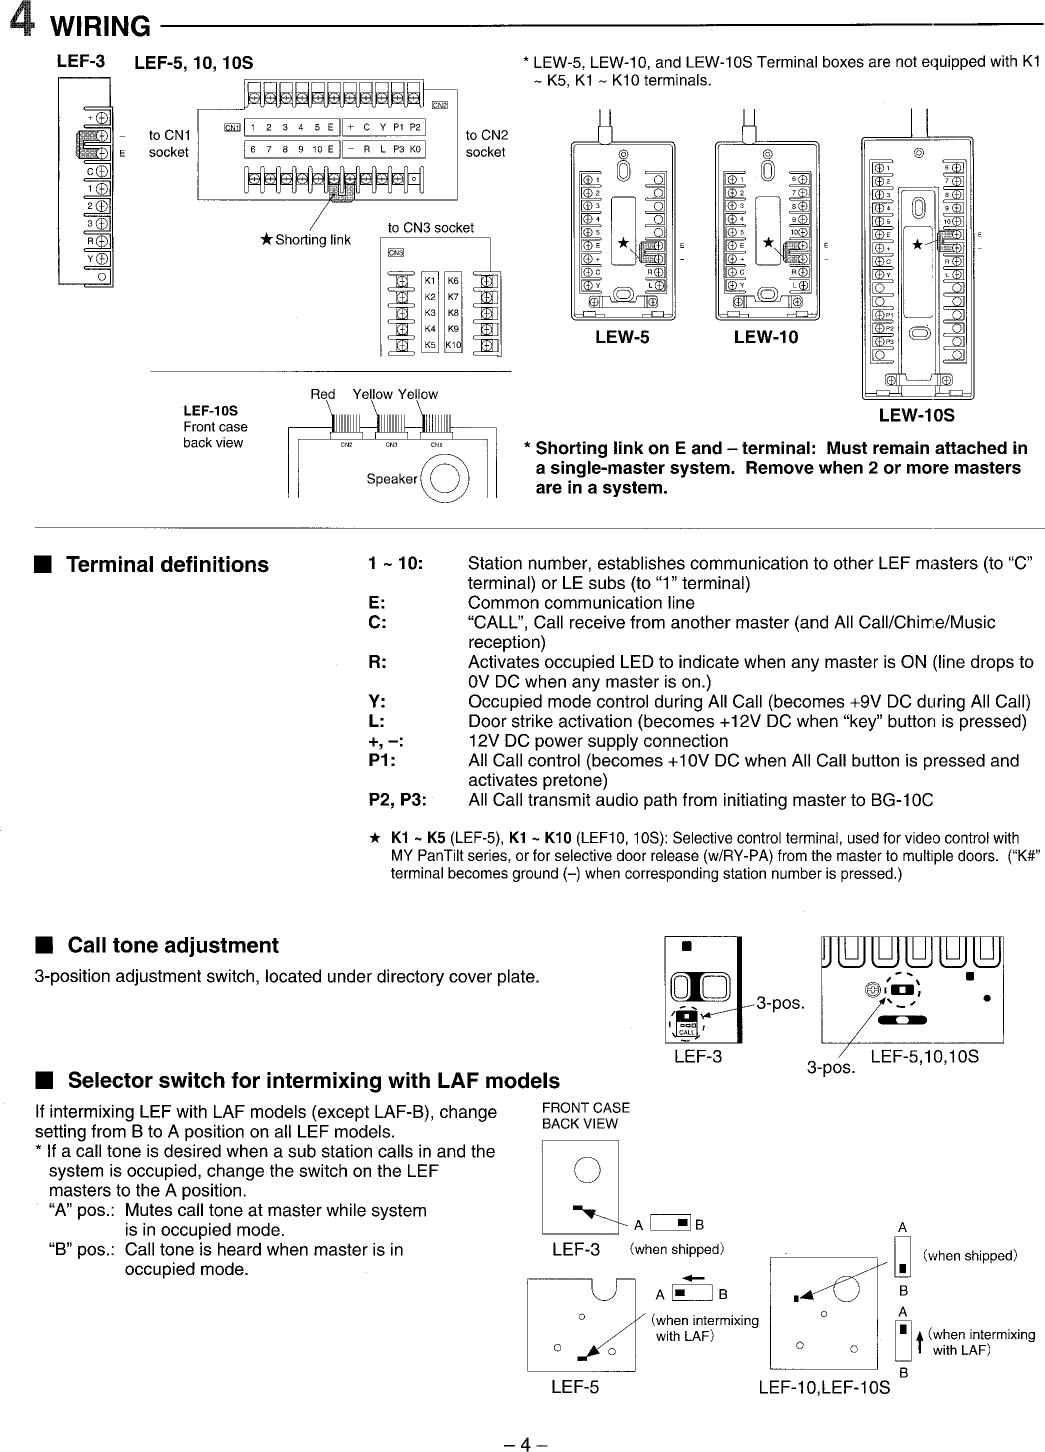 Aiphone Lef 10s User Manual To The B7c459df 1ea2 4dab 9598 13ba76f2796d 5 Wiring Diagram Page 4 Of 12